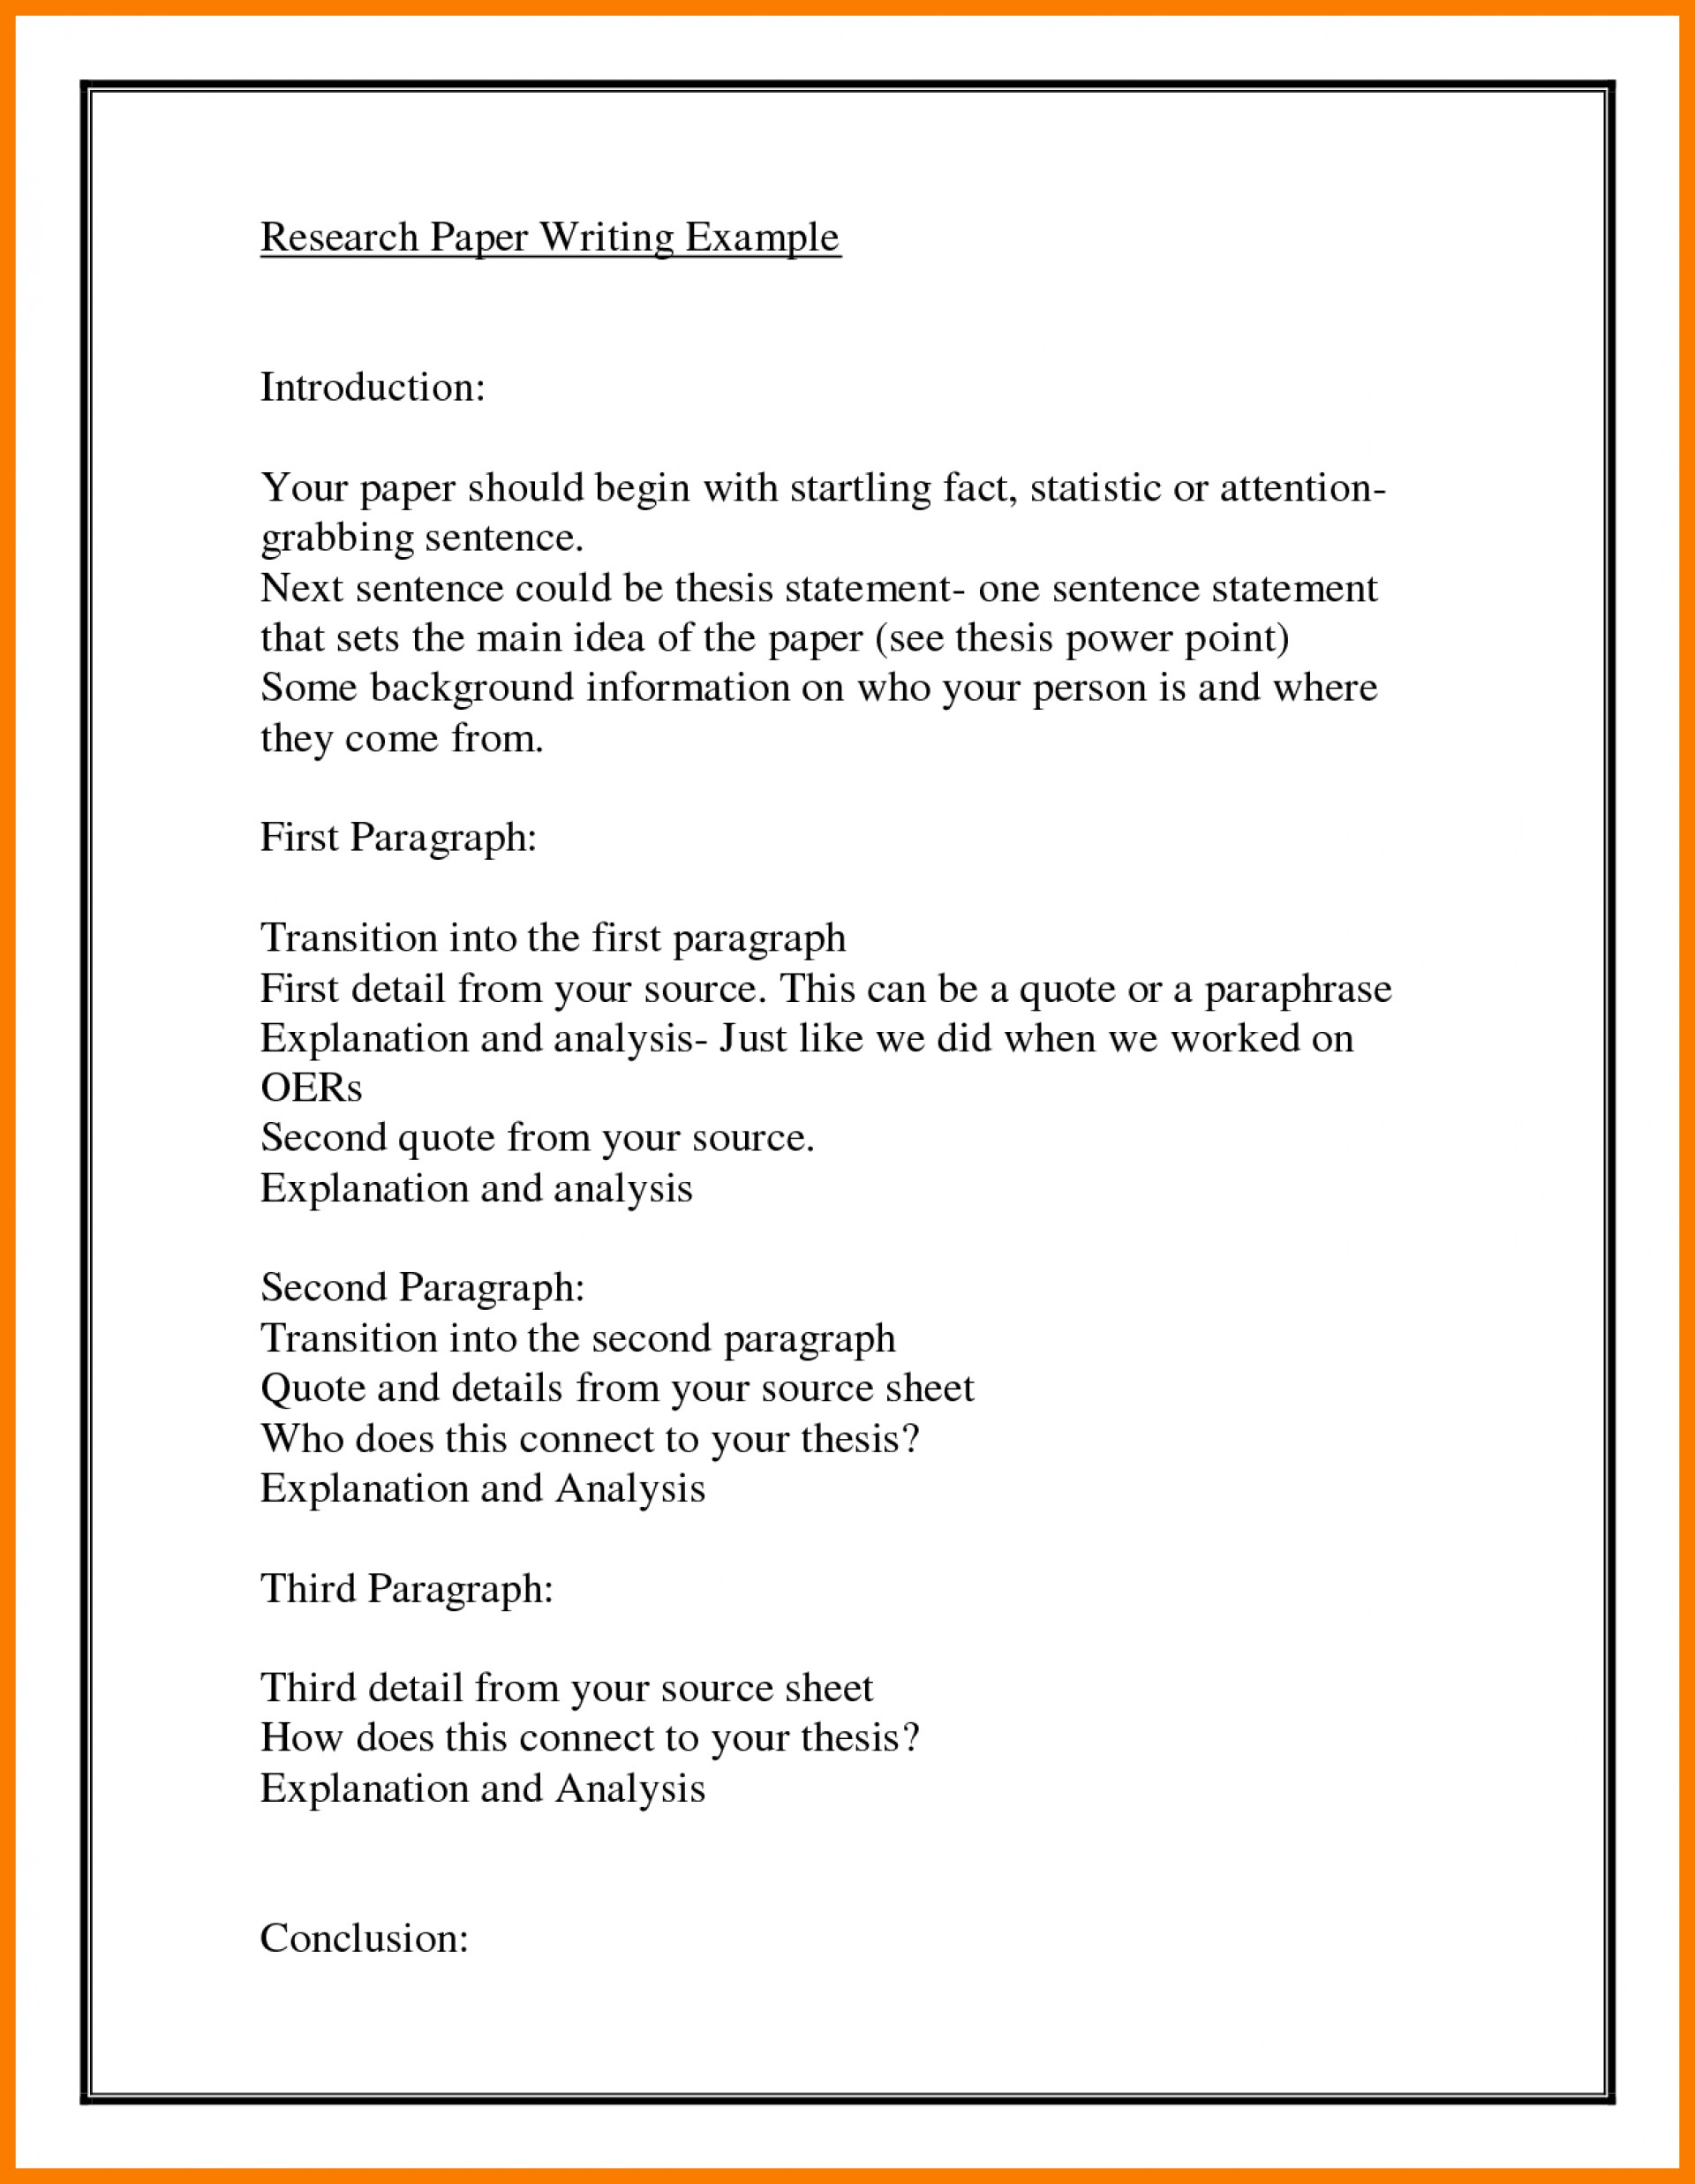 010 Research Paper Introduction Paragraph For Example Template 236912 Exceptional A 1920